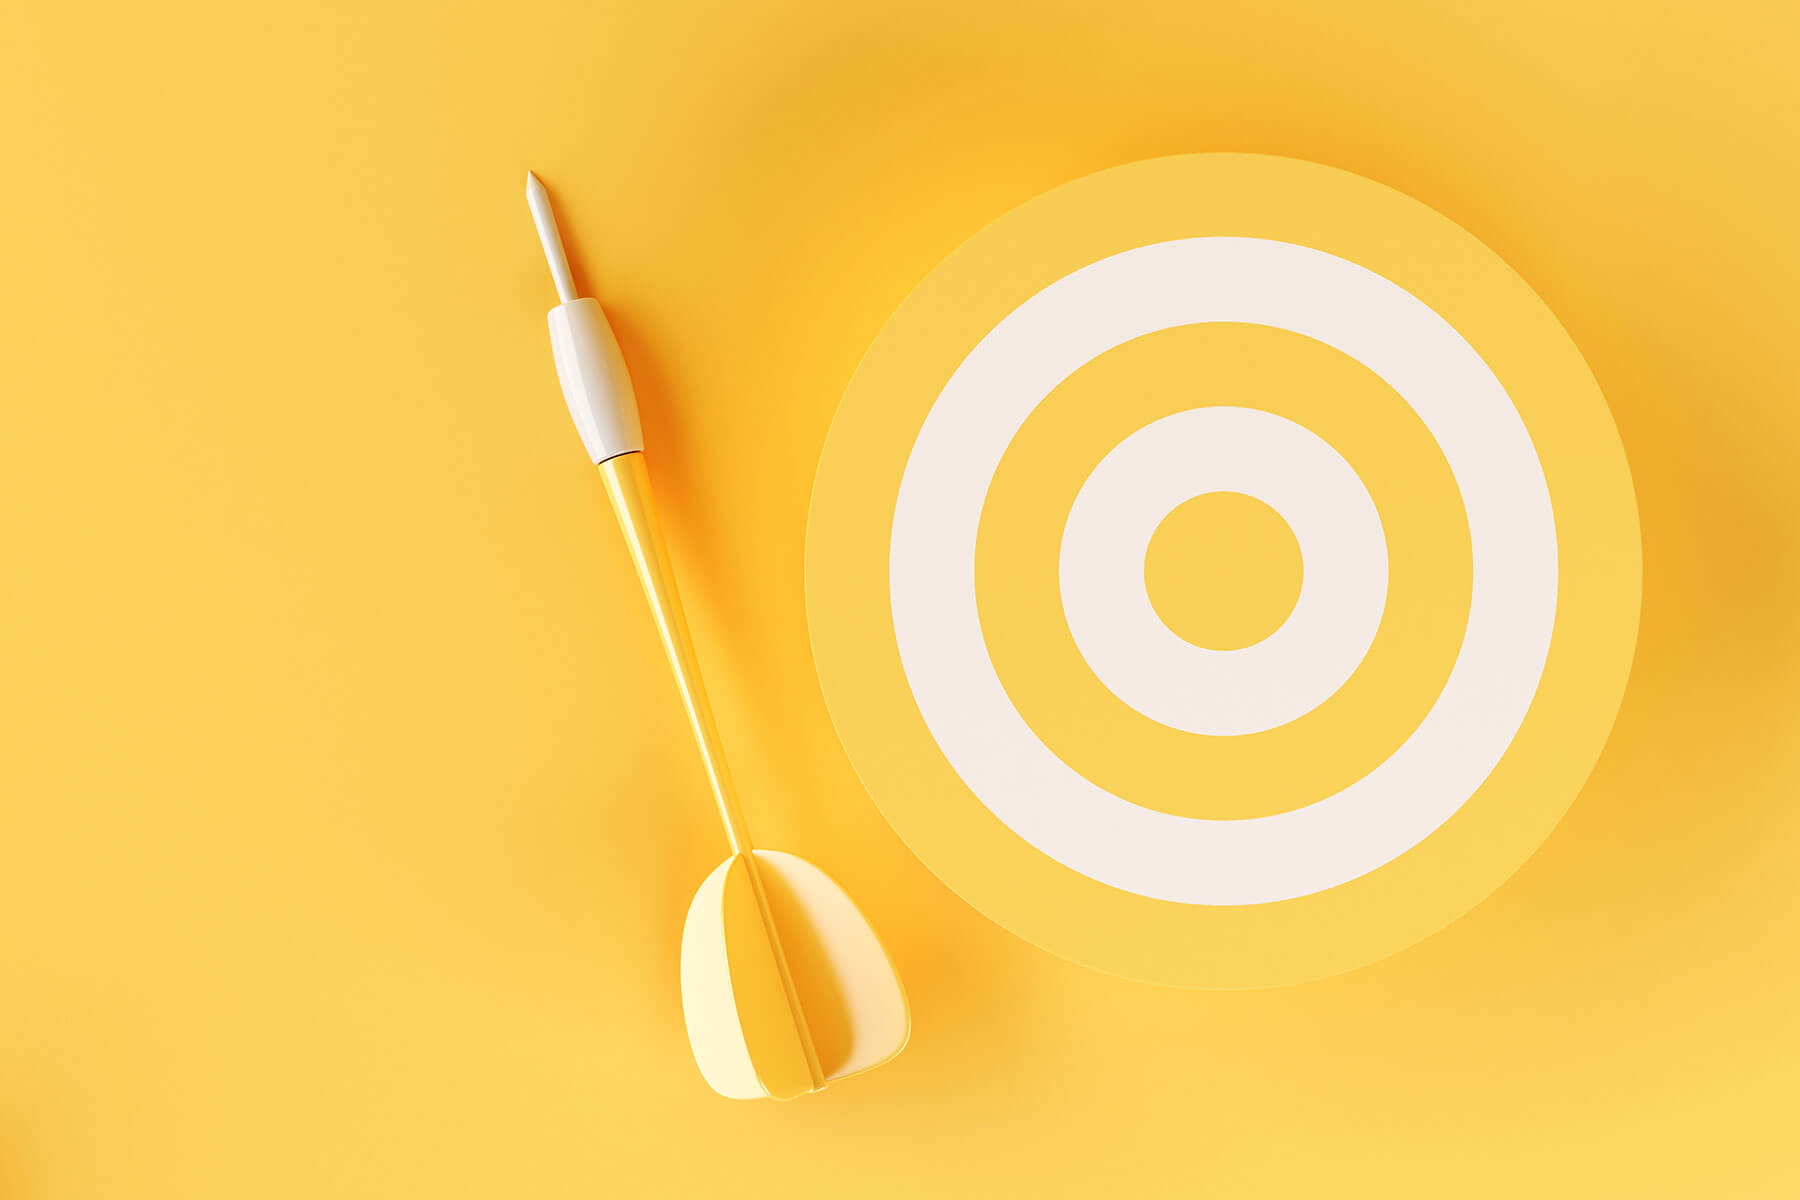 3d-target-on-yellow-background-TKEE3CQ